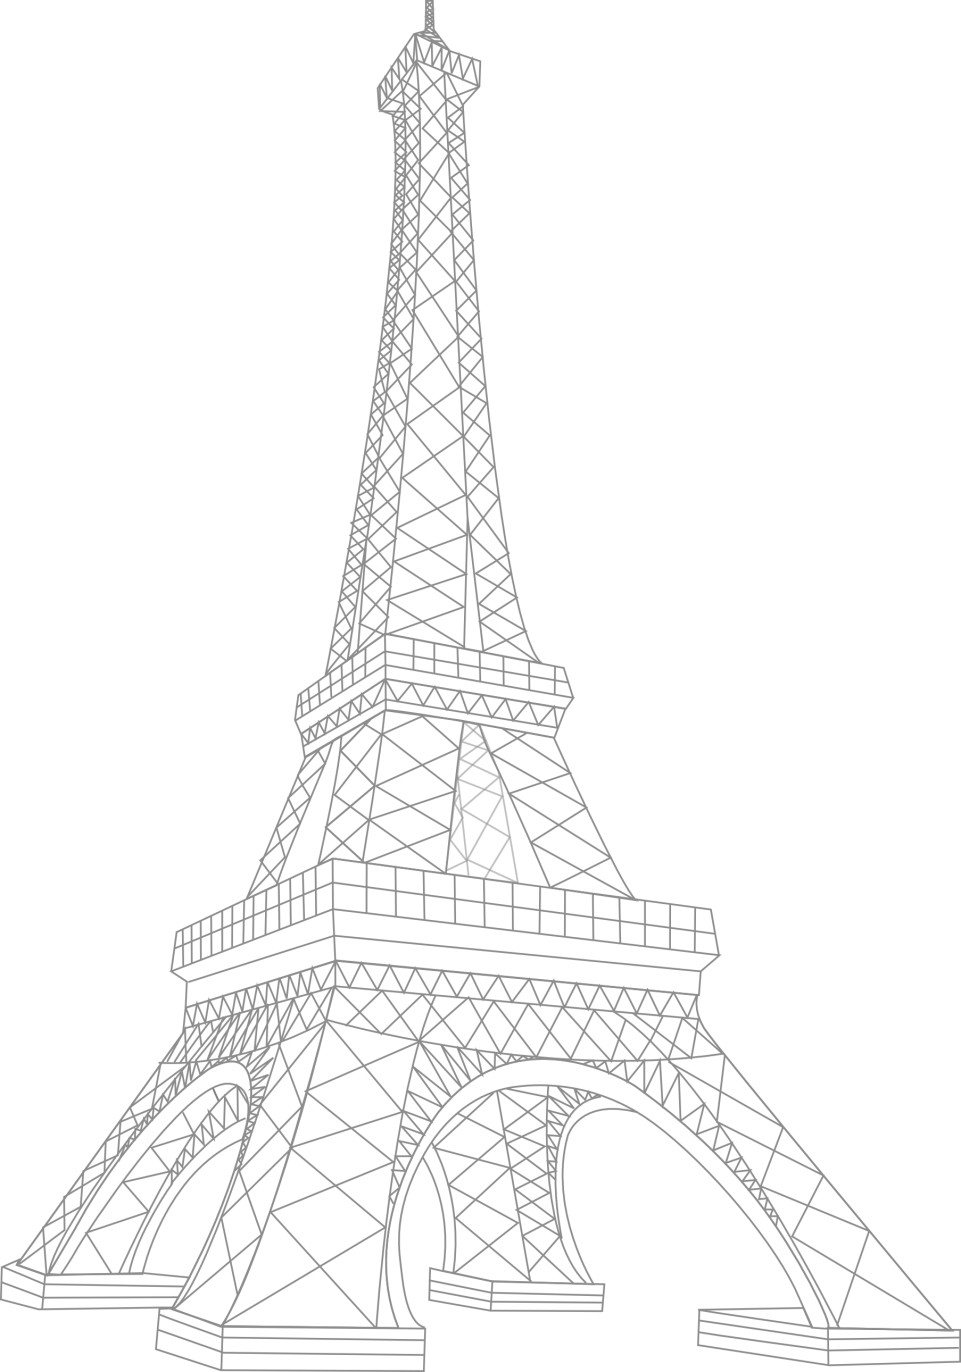 Architectural Impression of Eiffel Tower - Paris PNG Image